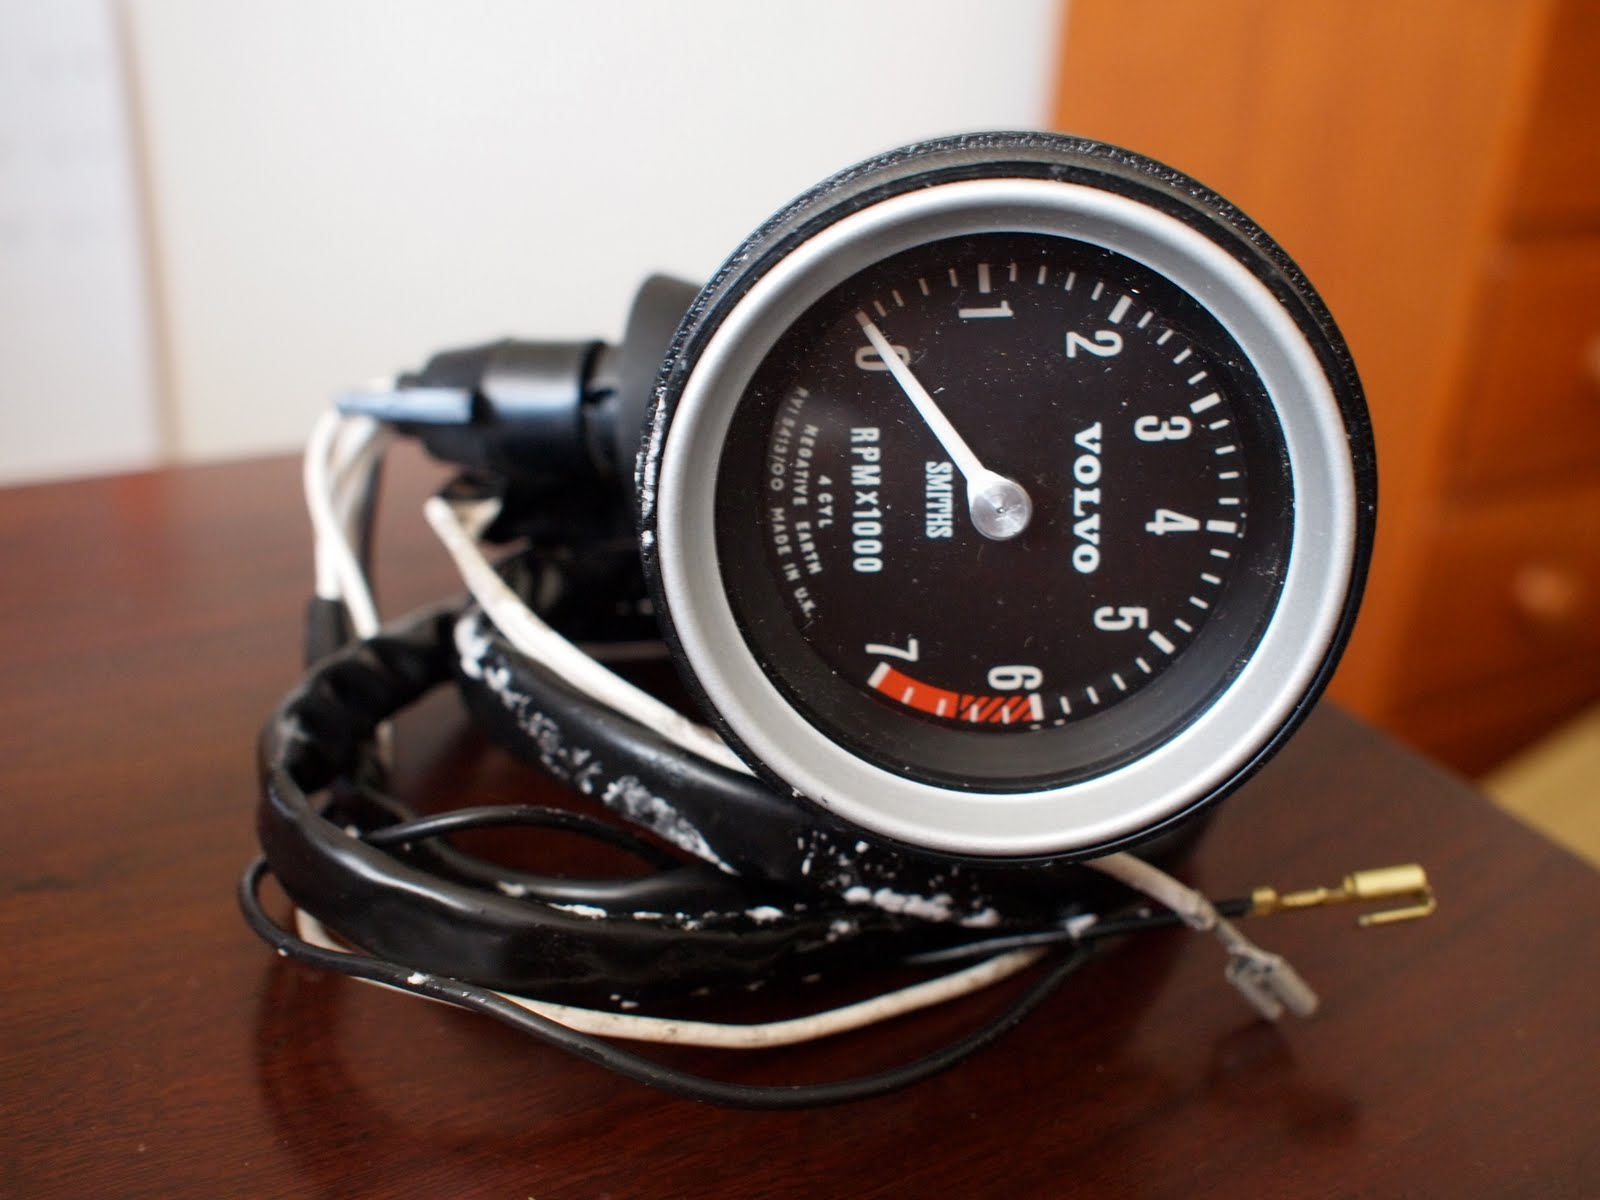 Planetsphere 123 Gt Tachometer Volvo Wiring In My Search For The Correct Tach I Encountered Many Other Variations Construction Scale And